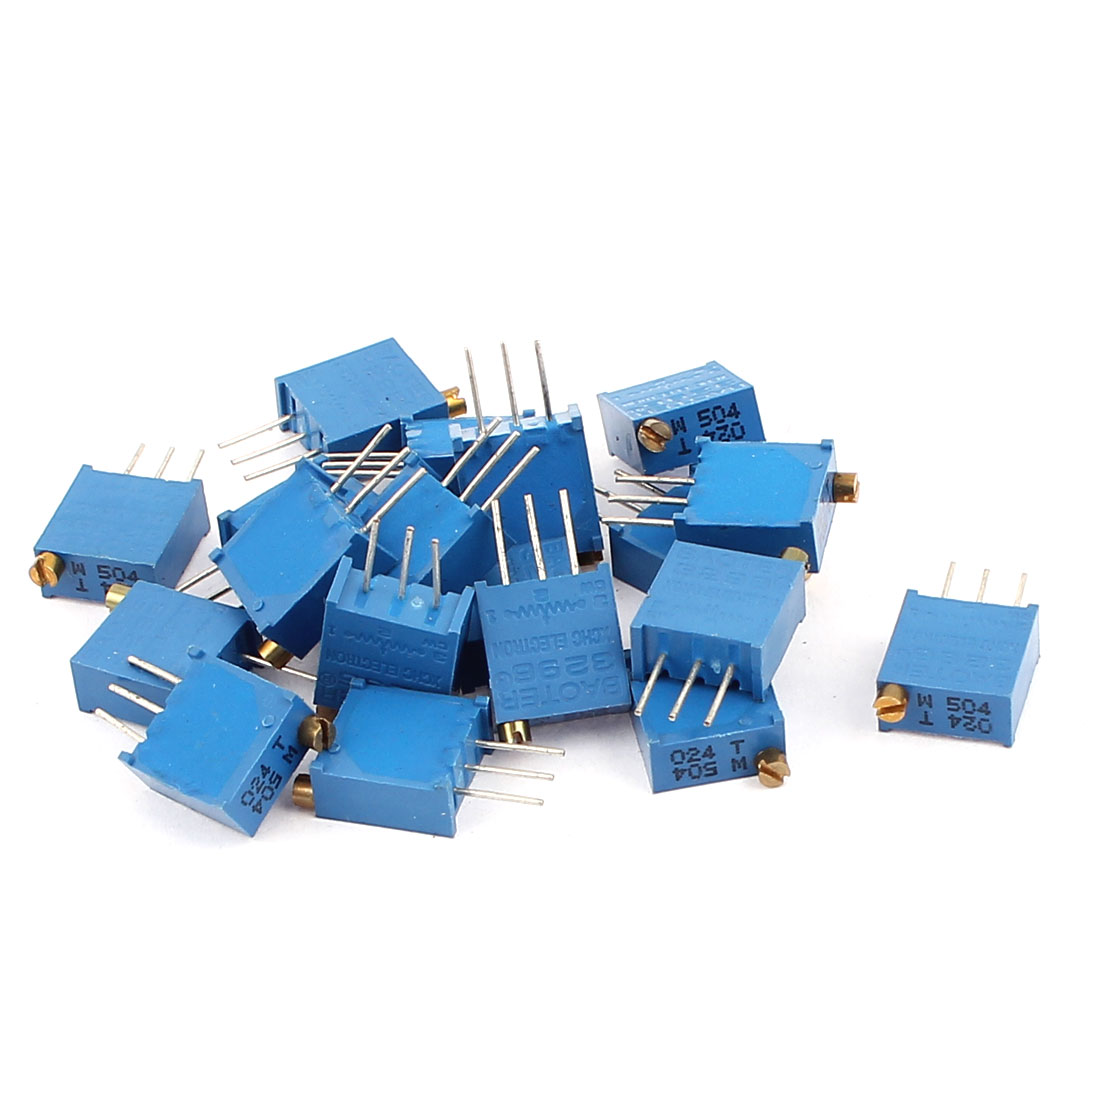 20 Pcs 3296W 500K ohm Multiturn Potentiometer Pot Variable Resistor